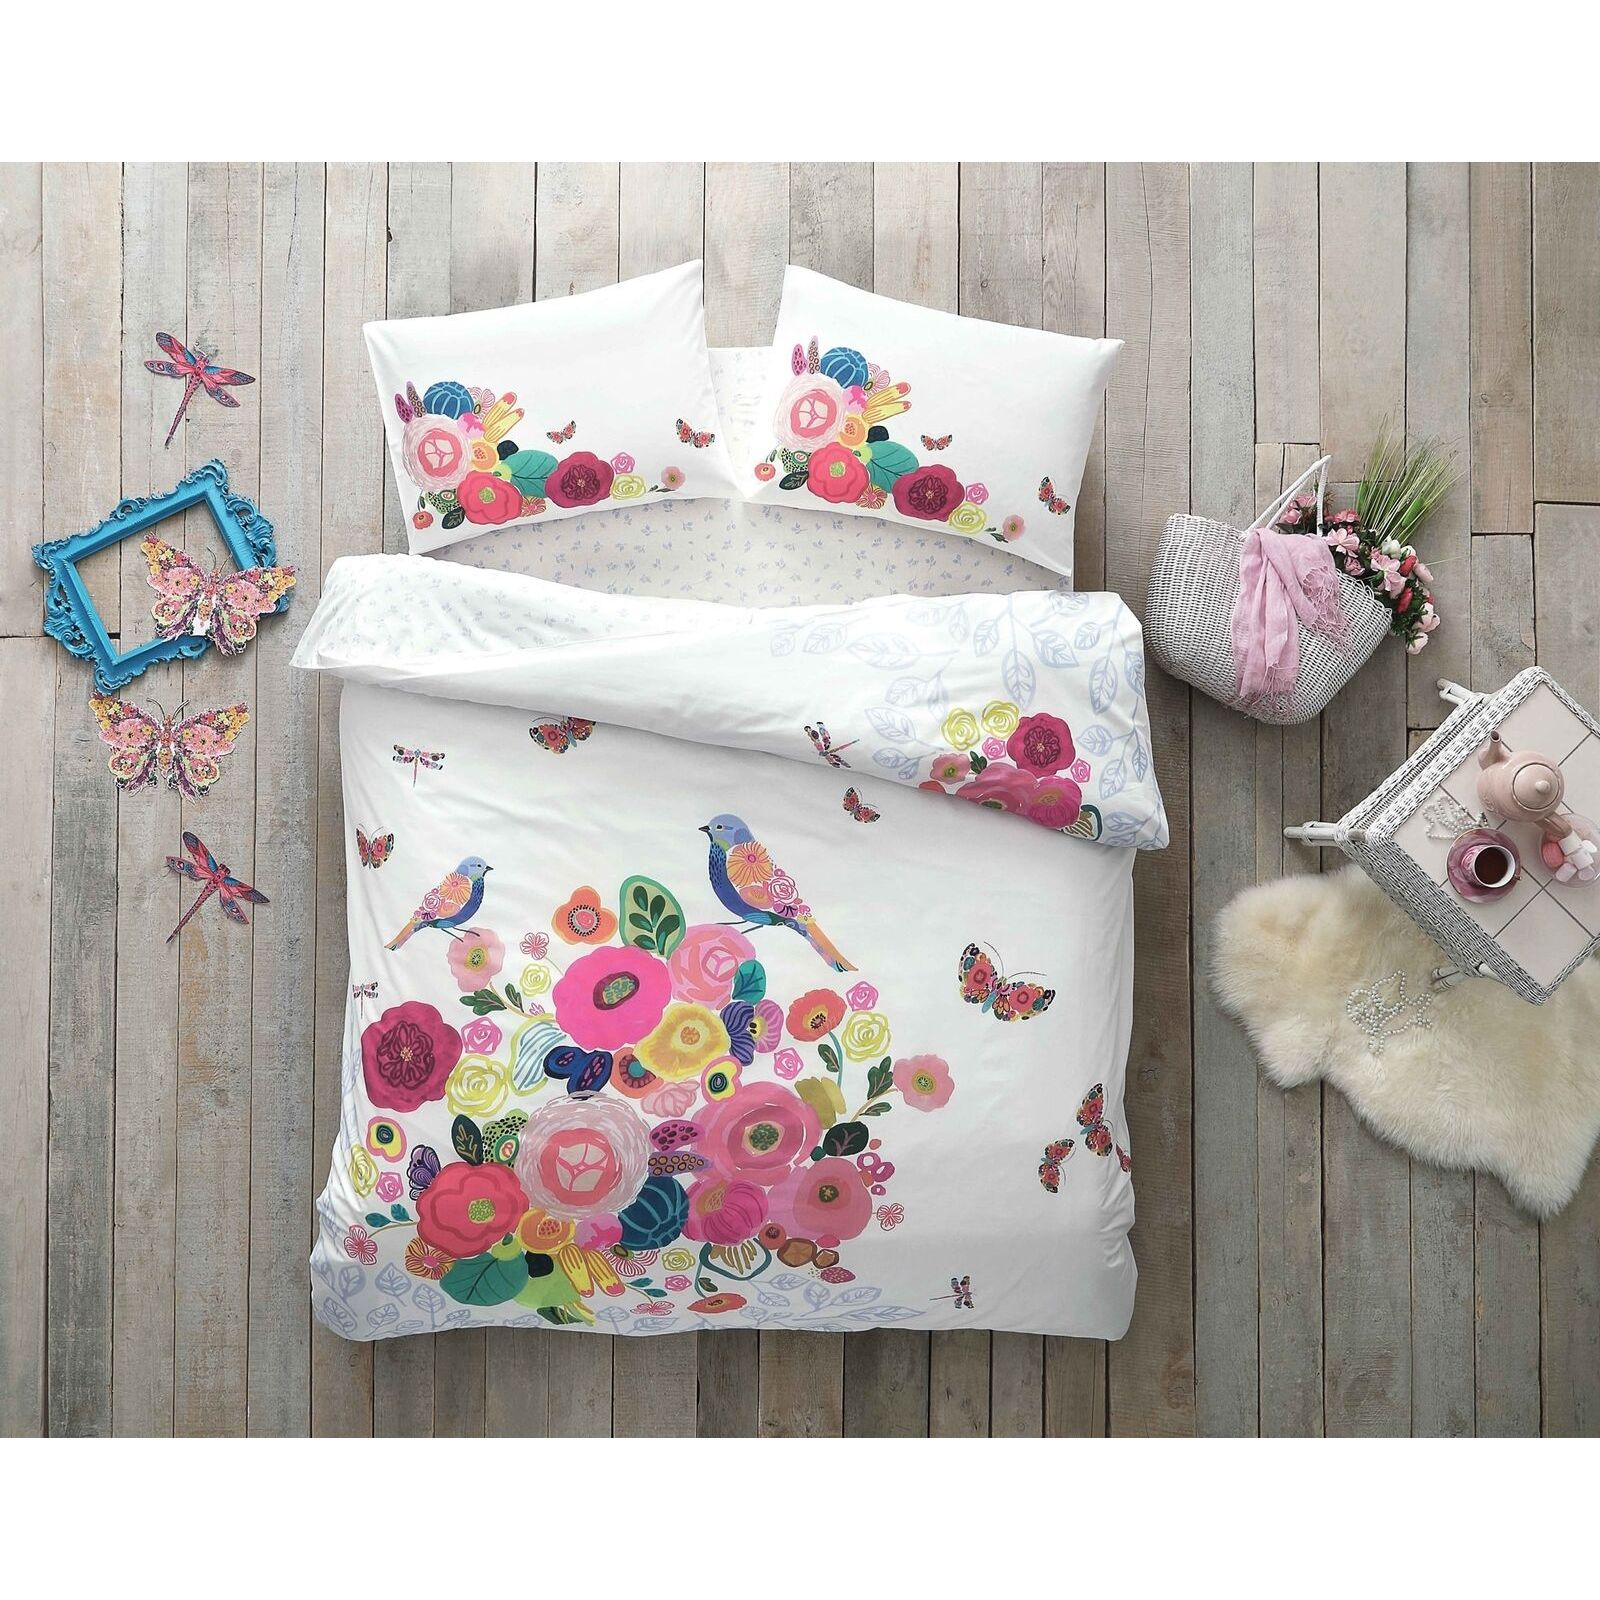 Floral Full Double 100% Cotton Bedding Duvet Cover Set w Sheet and Pillow cases